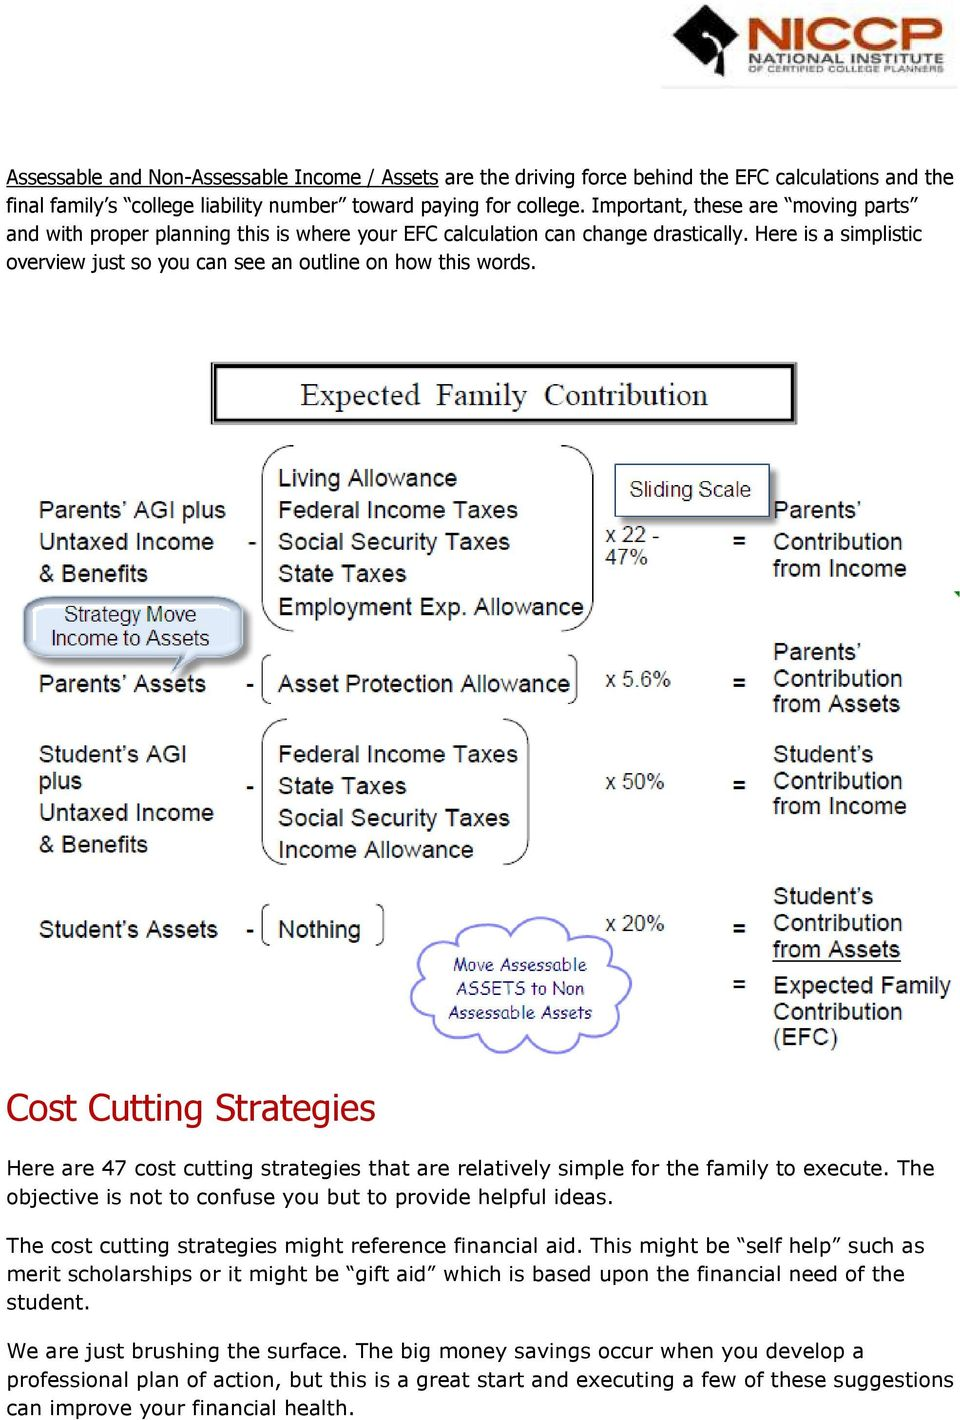 Cost Cutting Strategies Here are 47 cost cutting strategies that are relatively simple for the family to execute. The objective is not to confuse you but to provide helpful ideas.